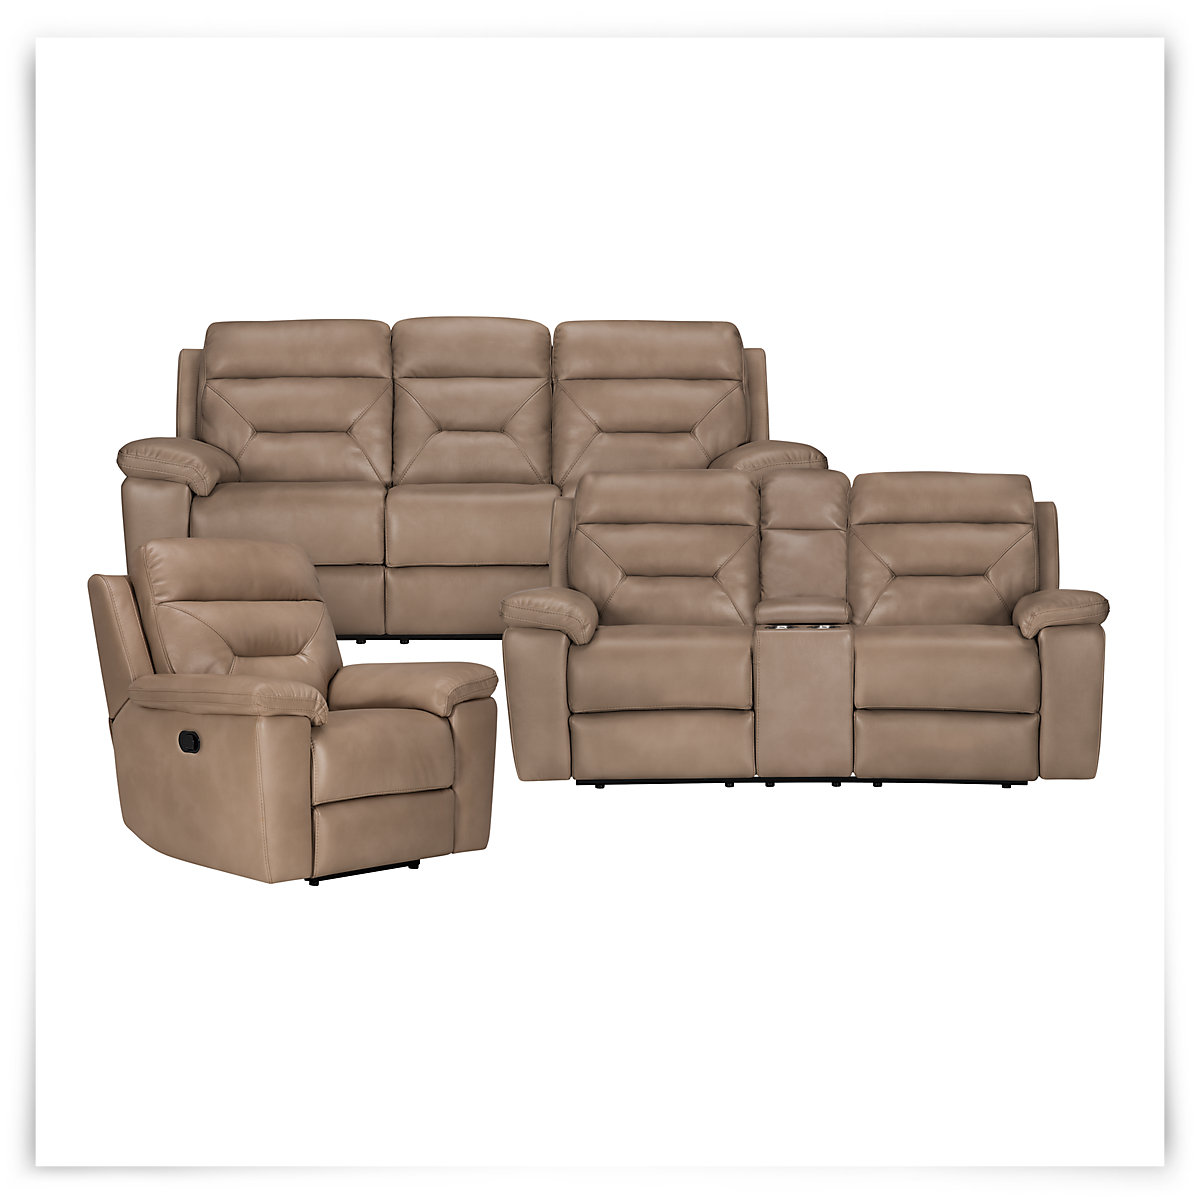 City Furniture Phoenix Dk Beige Microfiber Reclining Sofa